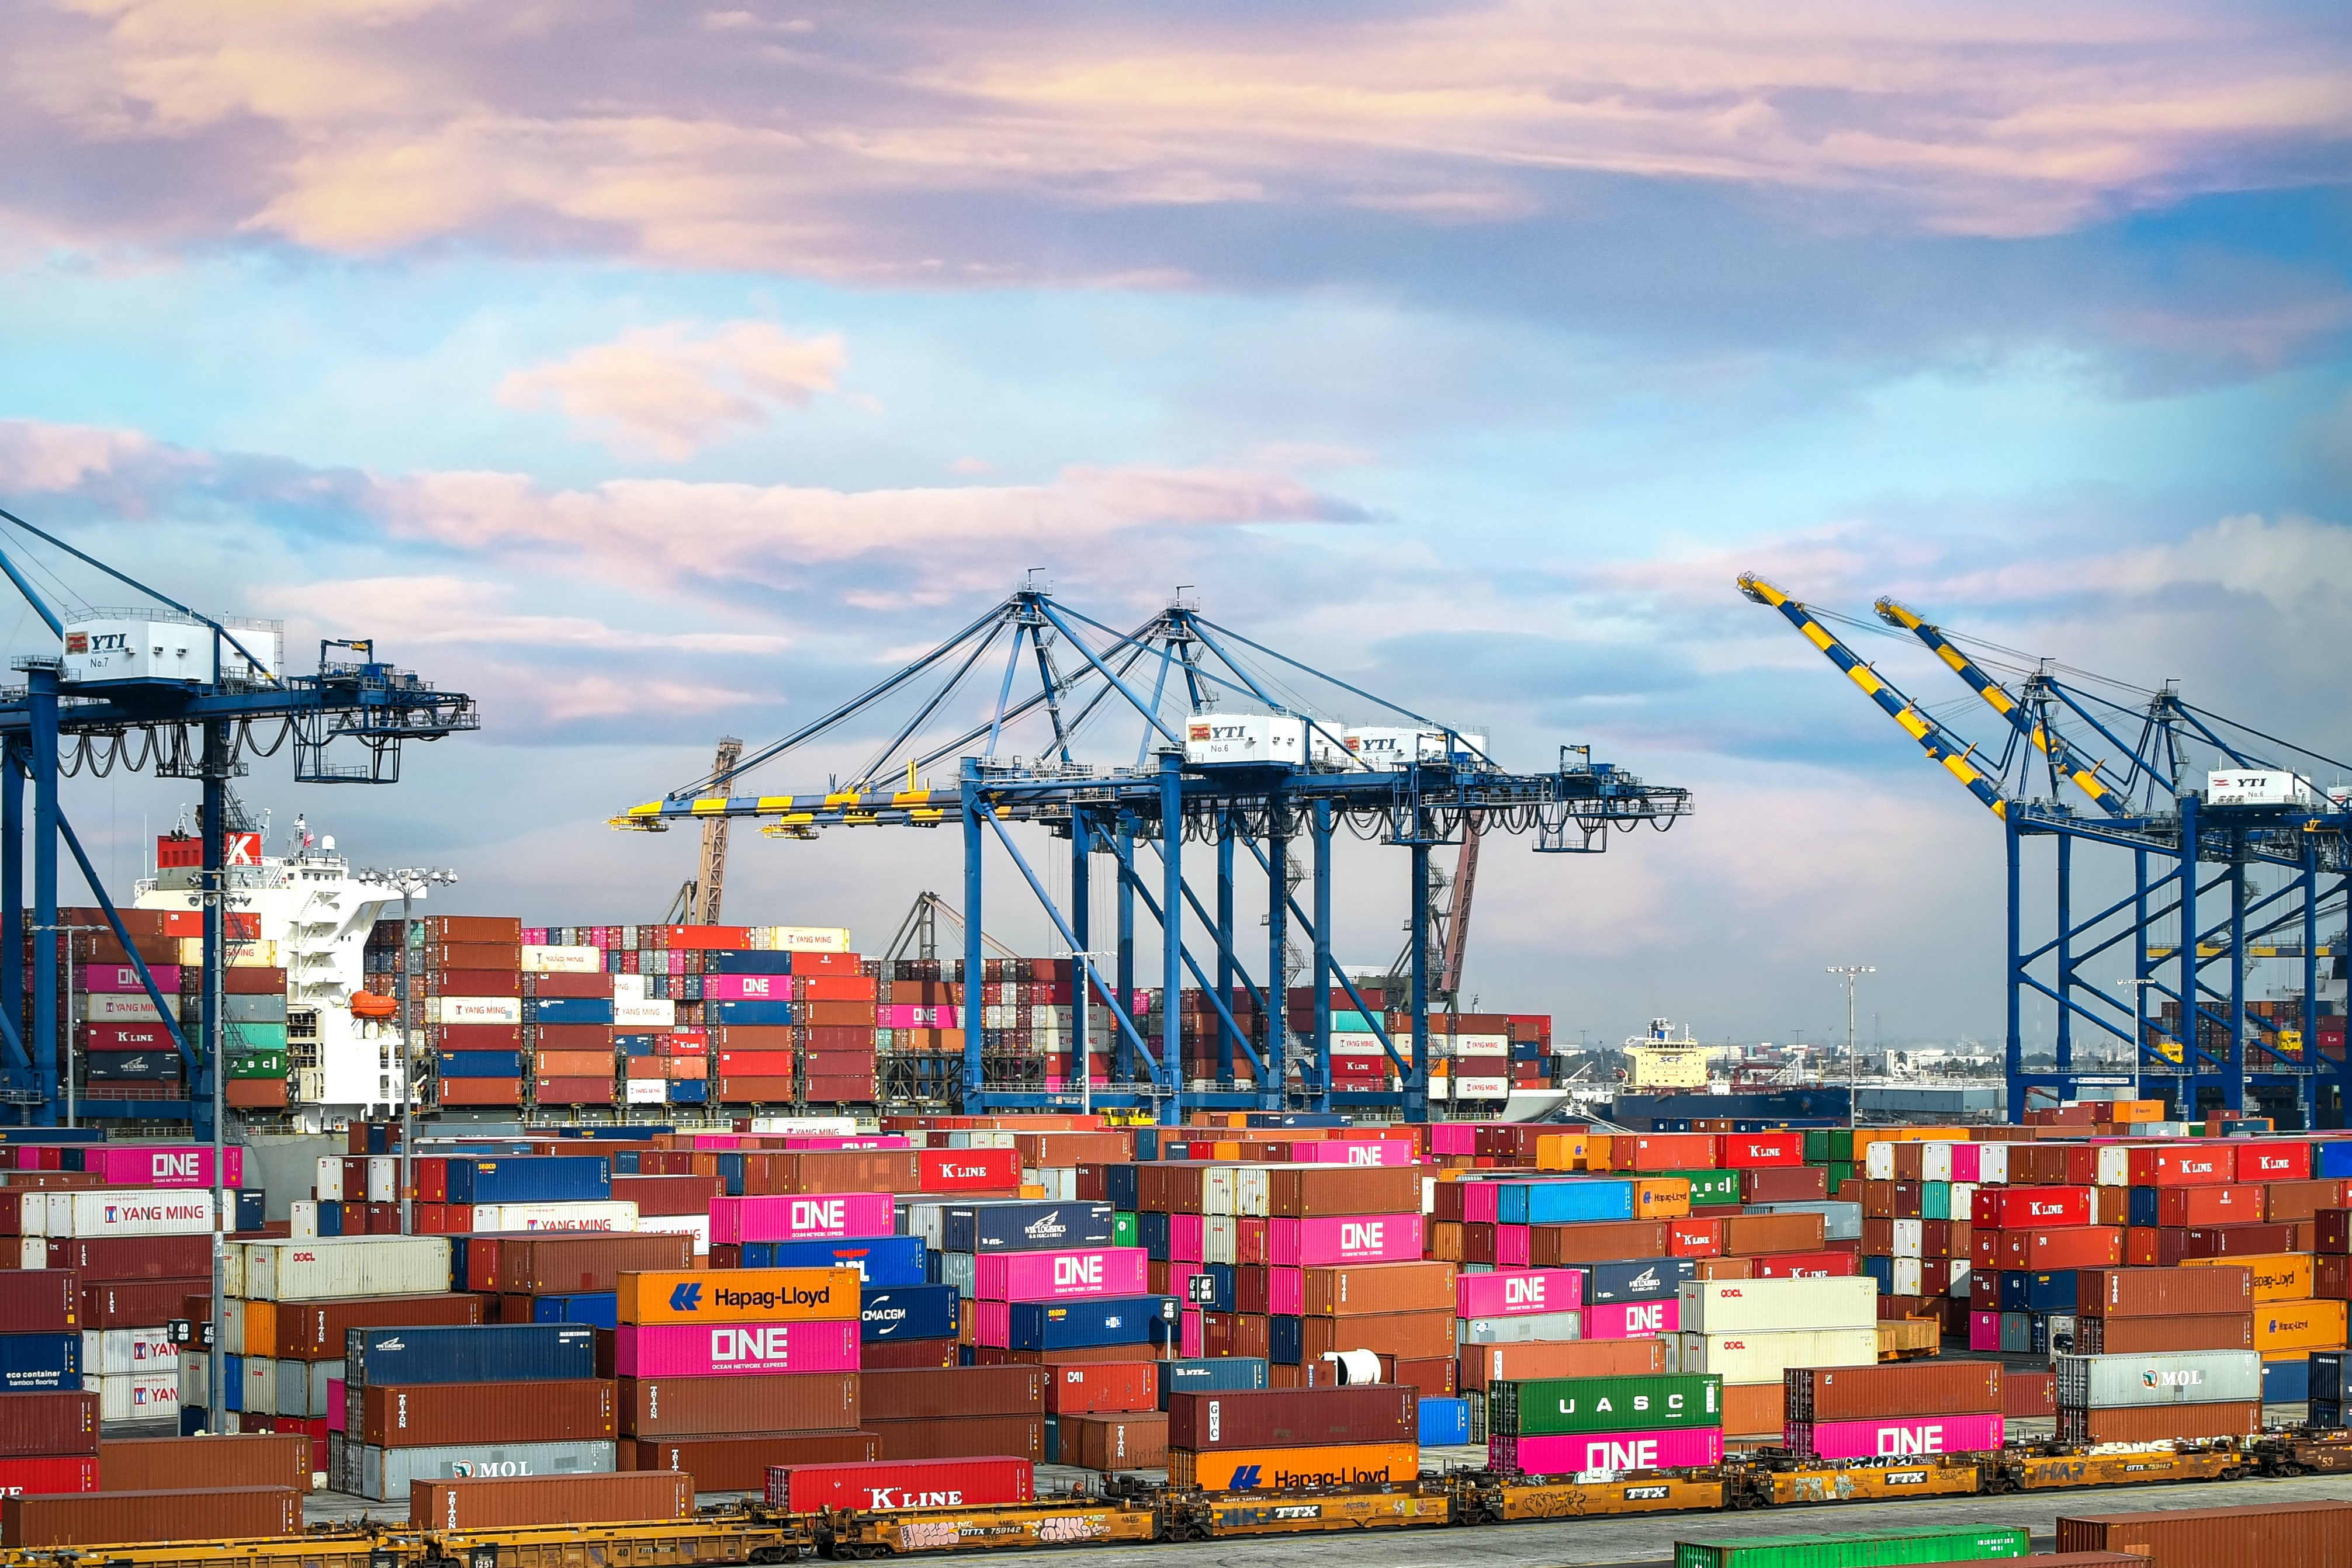 Motifworks-How Big Data Analytics Can Benefit Supply Chain & Logistics Industry – Part 2